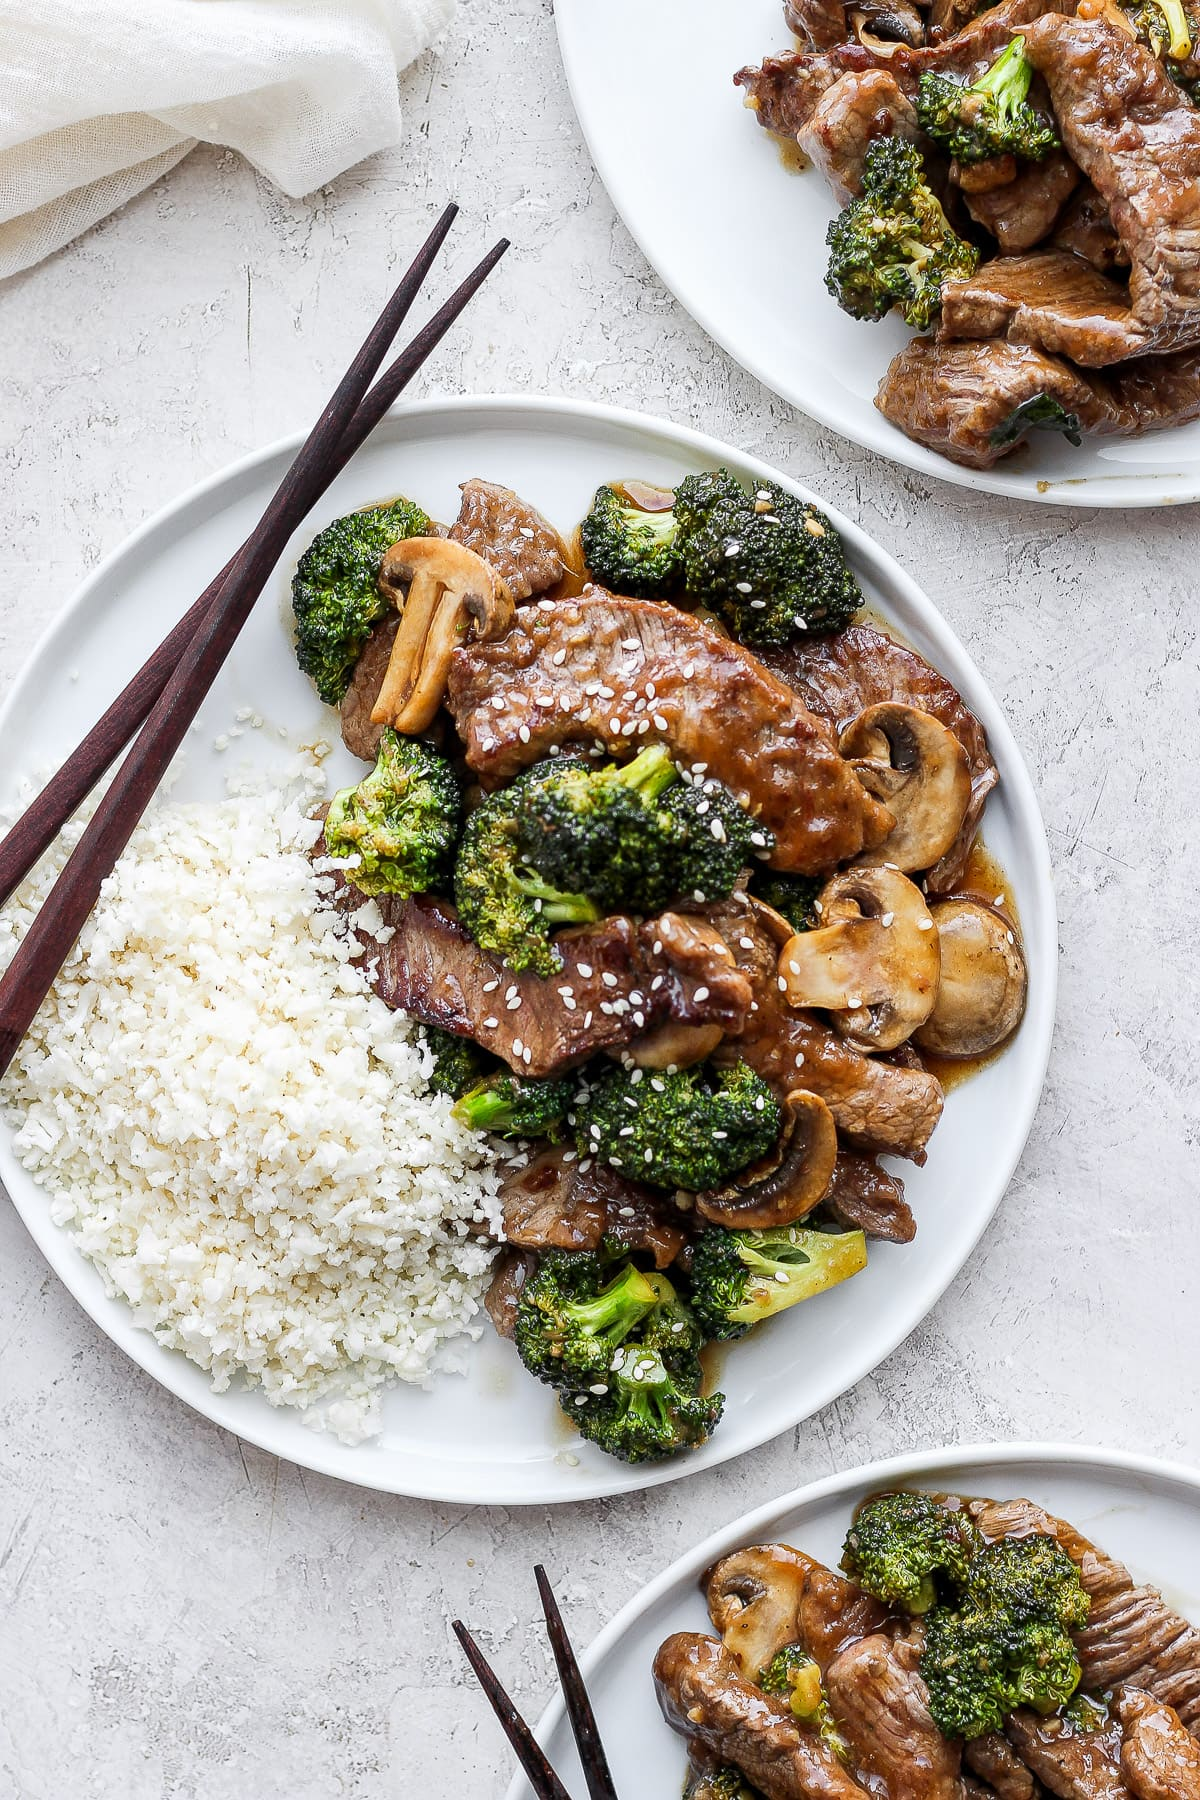 Healthy Beef And Broccoli The Wooden Skillet